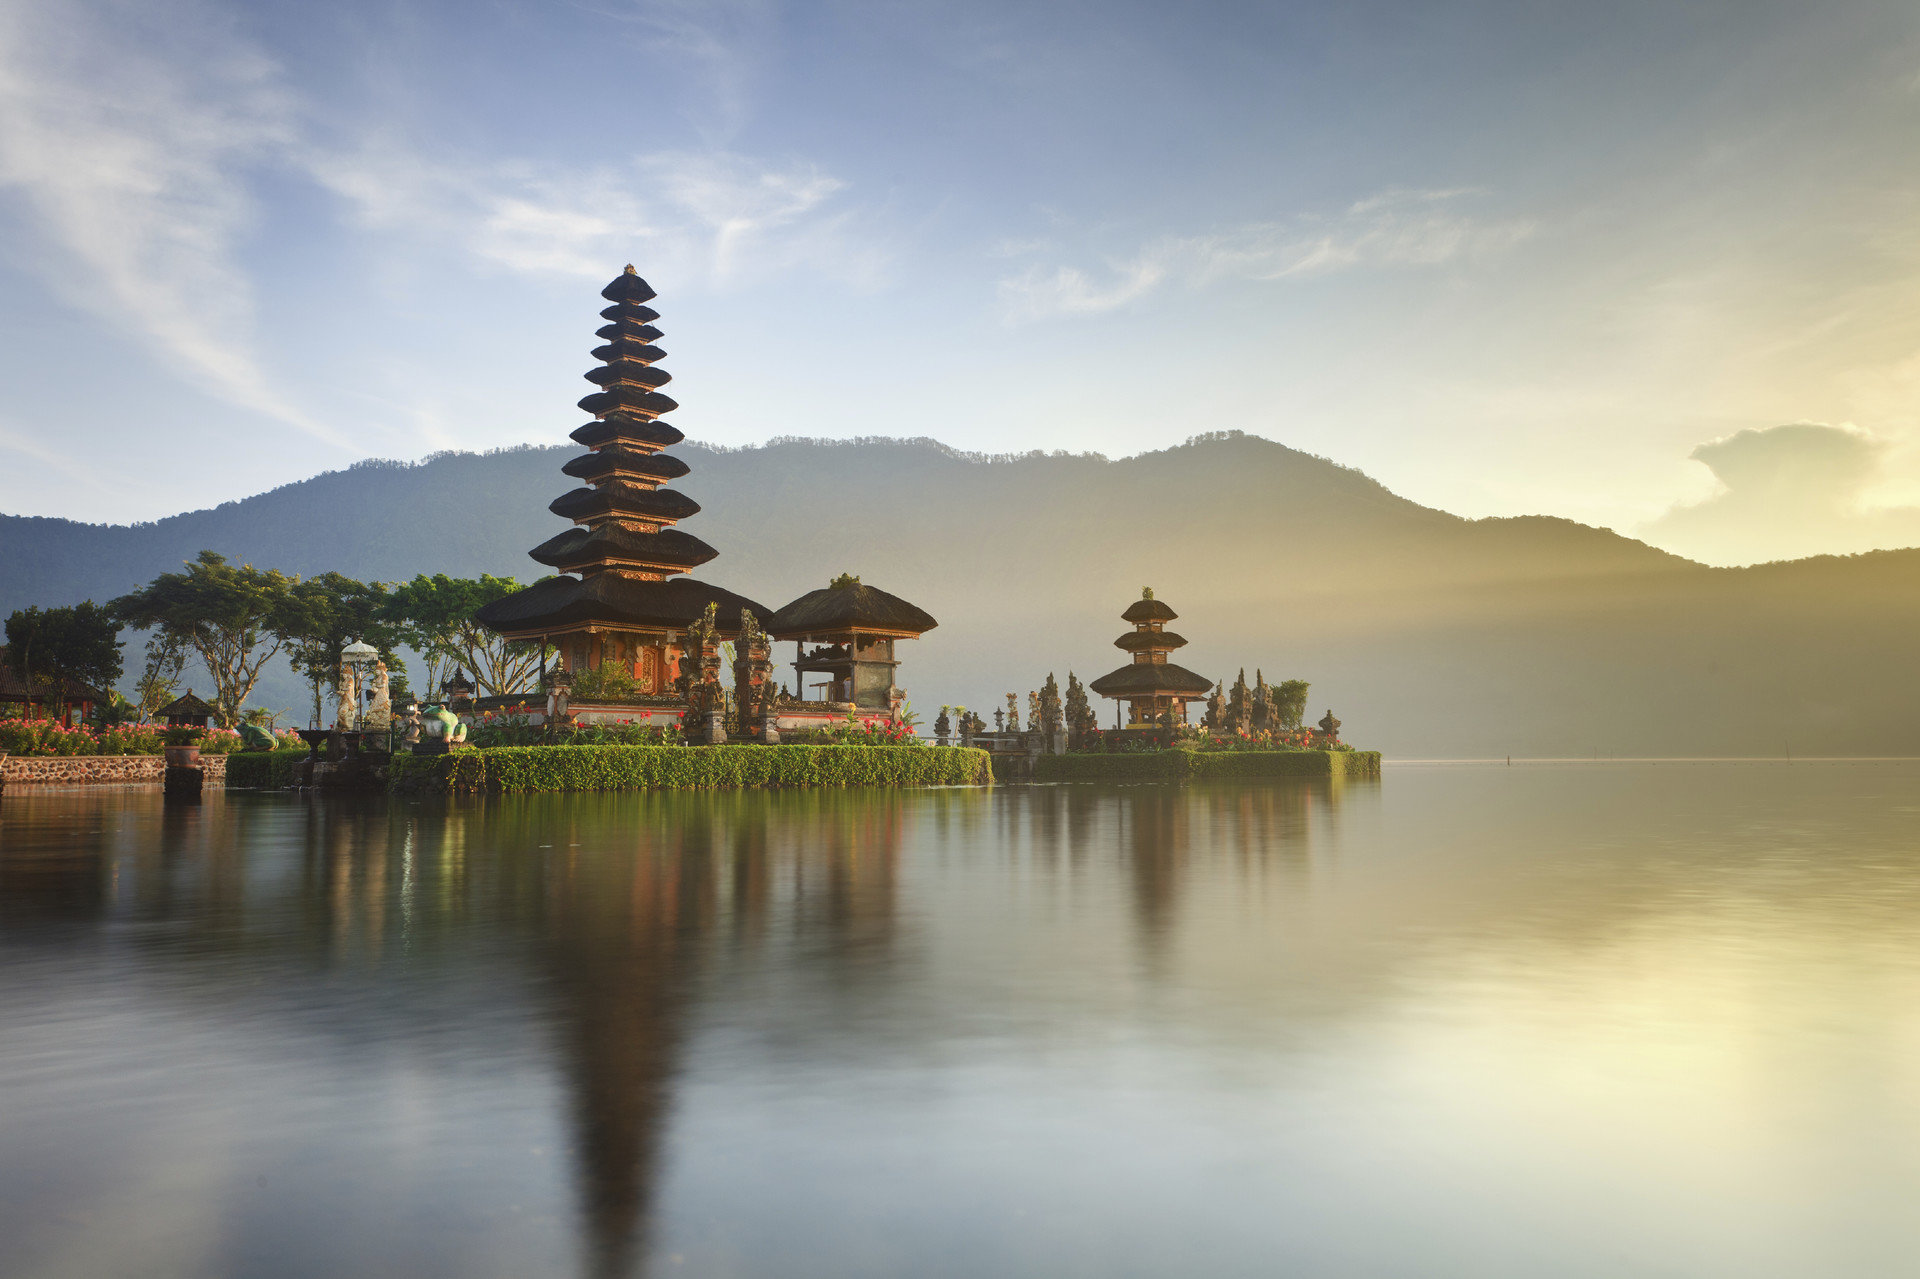 Hotels outdoor water sky reflection atmospheric phenomenon Lake Nature morning evening temple dusk dawn shore